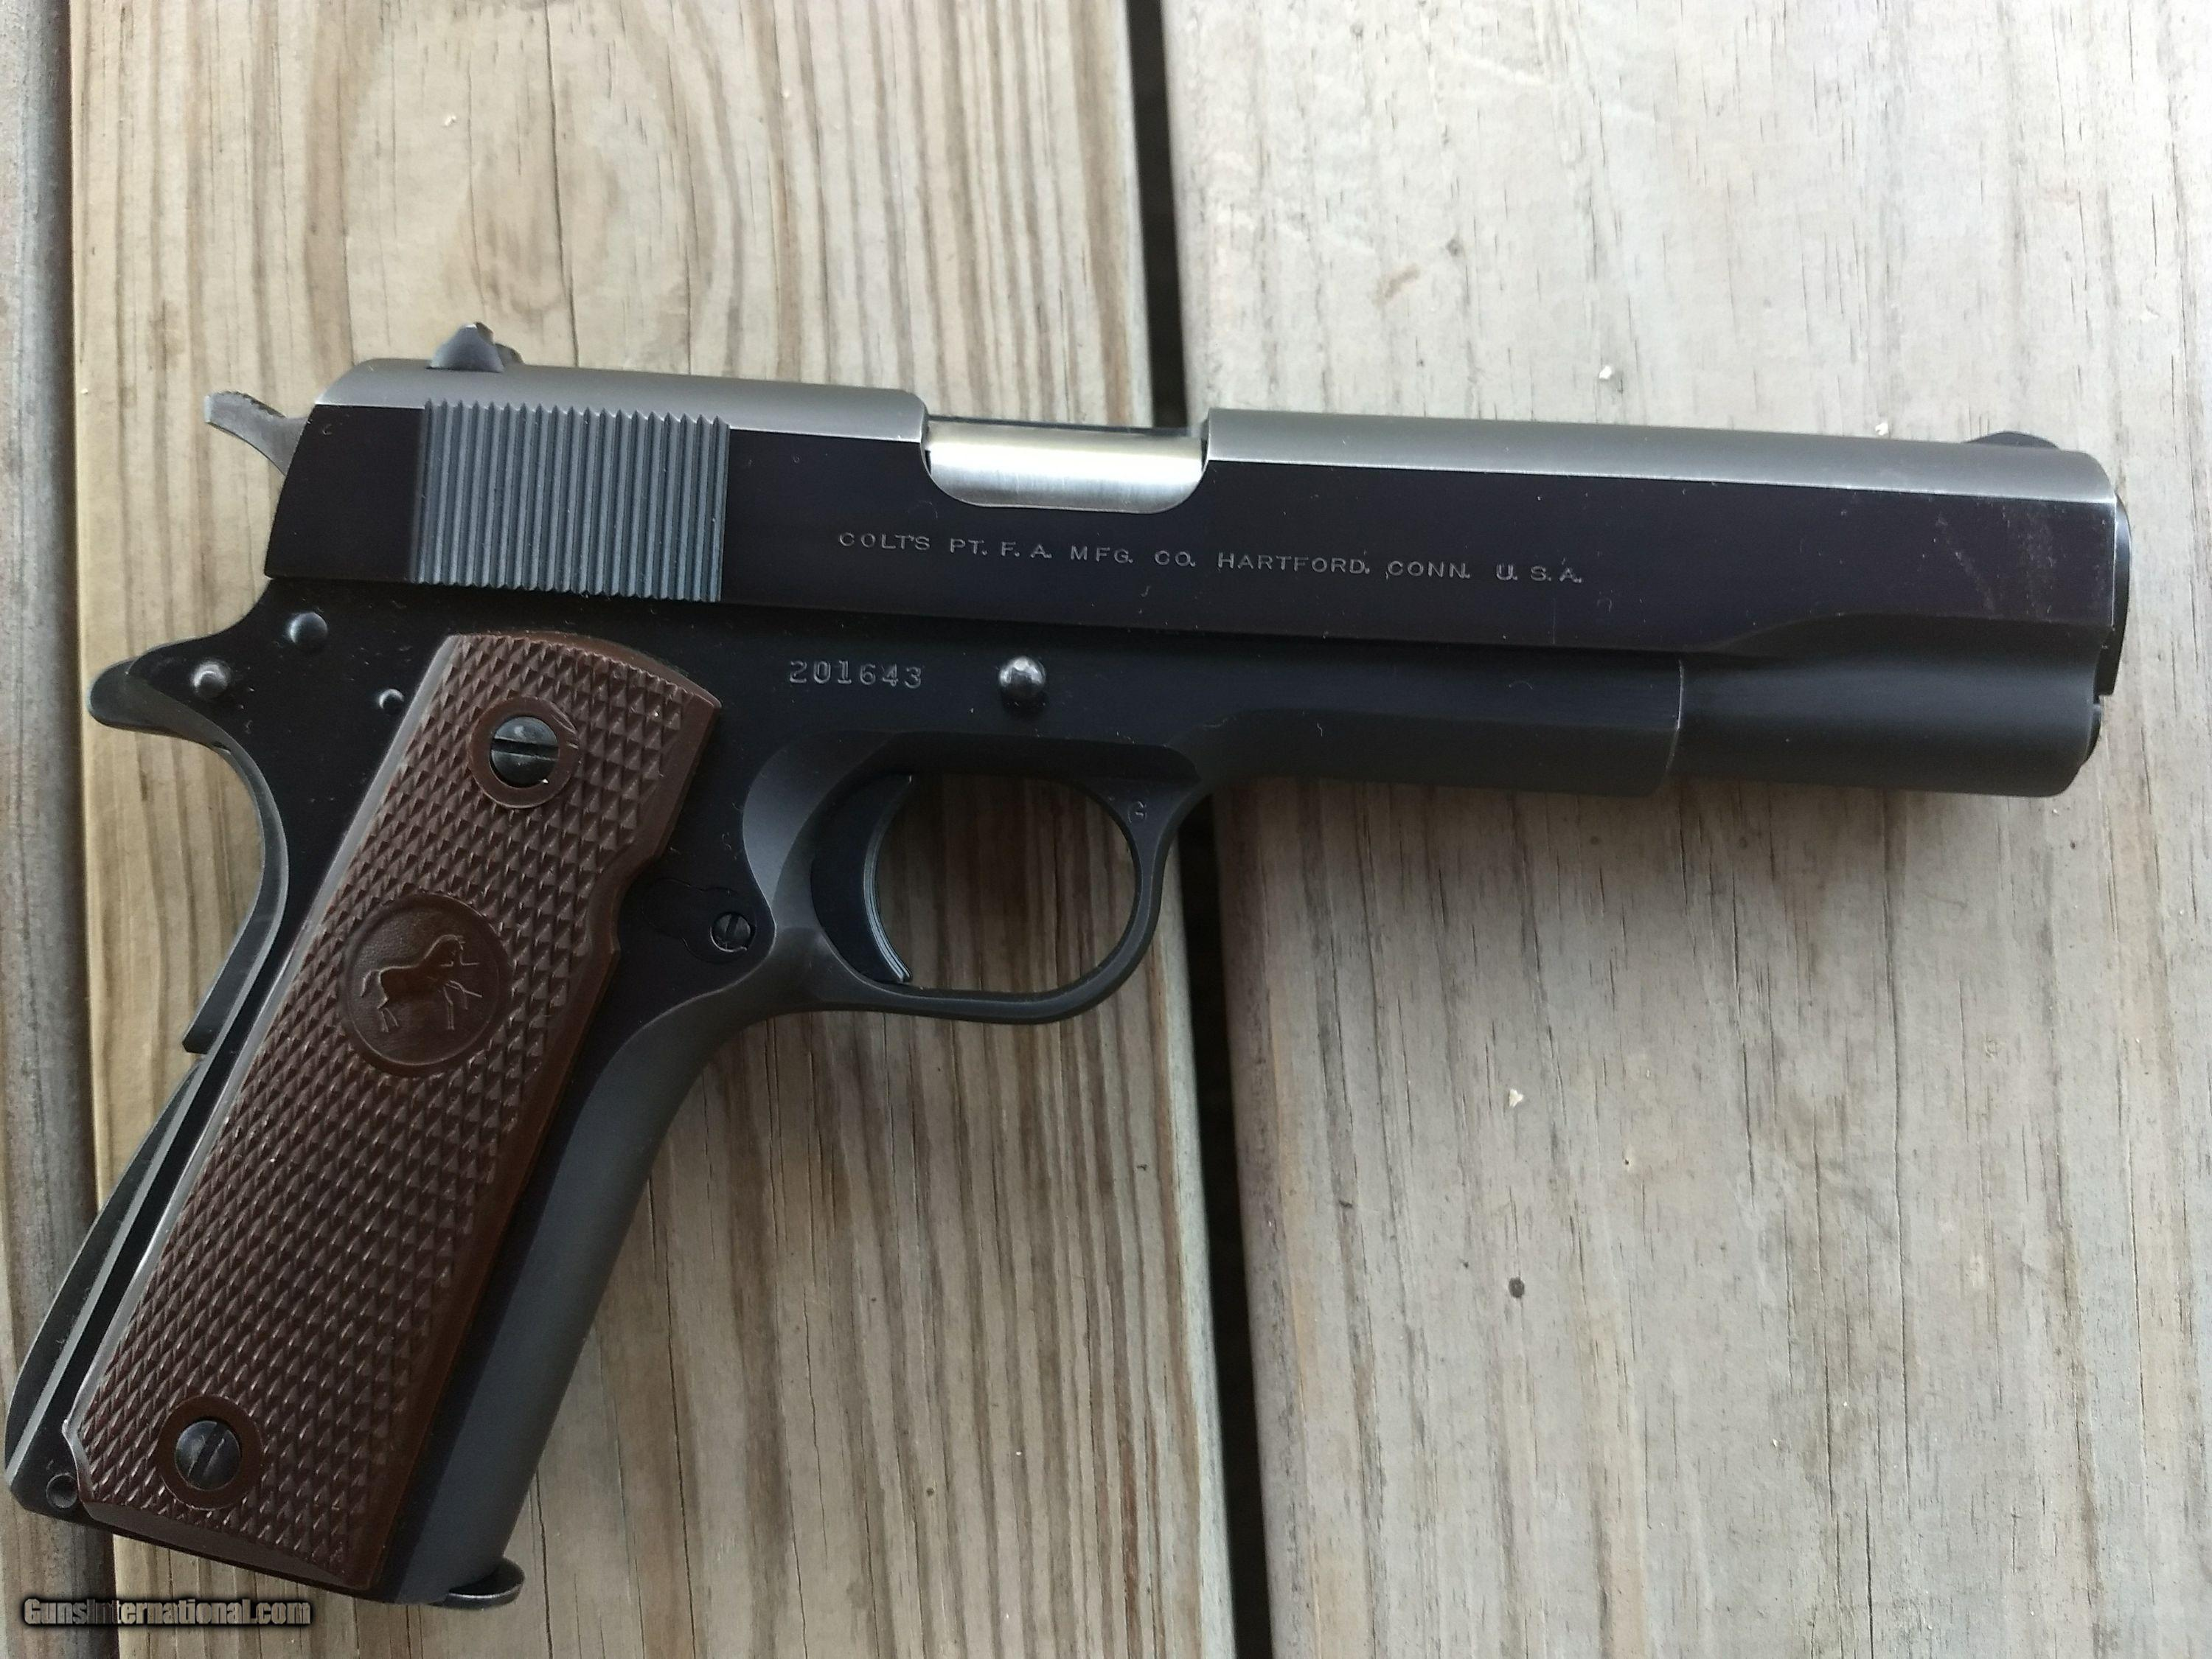 1968, LIKE COLT SUPER 38 AUTOMATIC PISTOL, SAME AS GOVERNMENT MODEL, MFG.